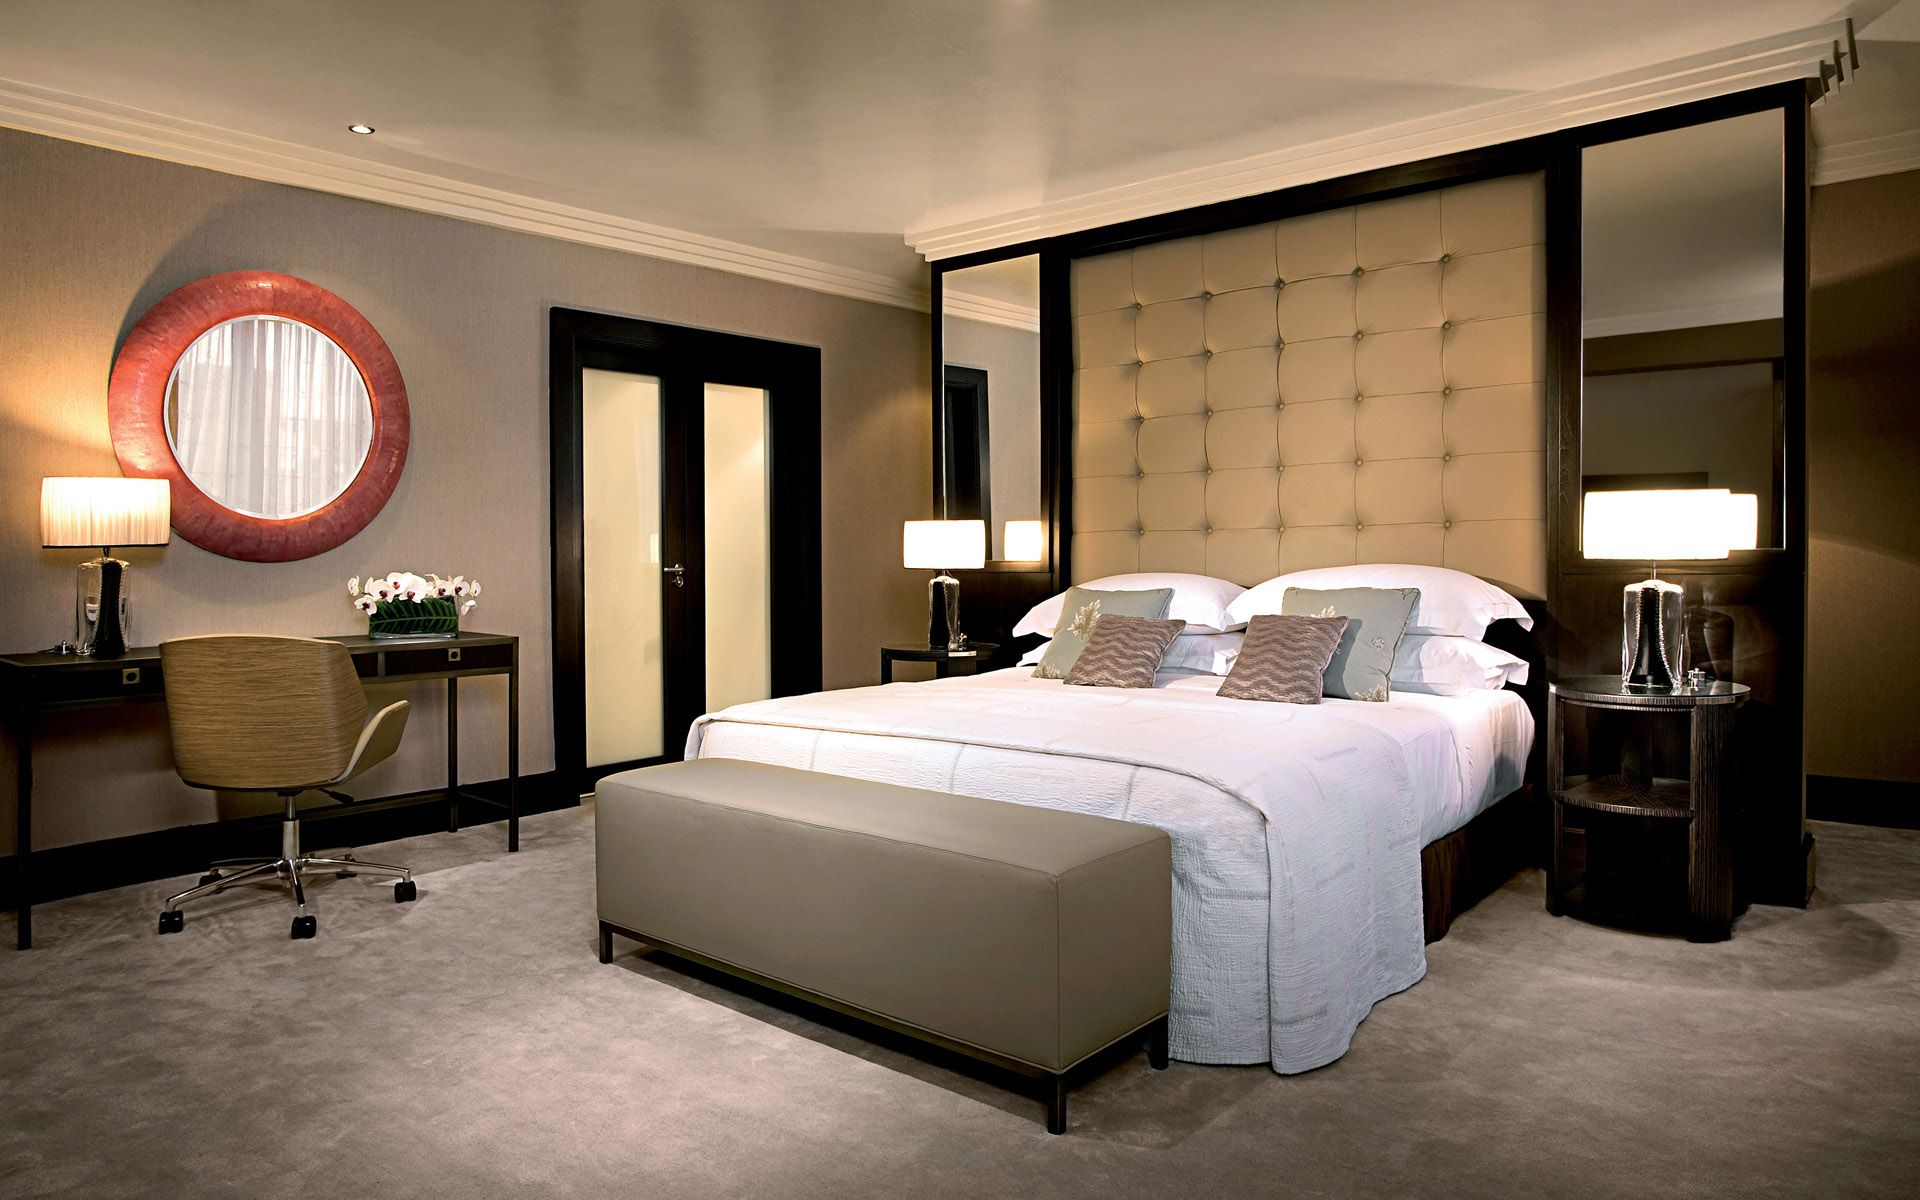 Contemporary High Tufted Gray Vinyl Like Leather Headboard With Gray Bench As Well As White Shade Table Lamps And Double Frosted Door In Modern Brown Bedroom Ideas